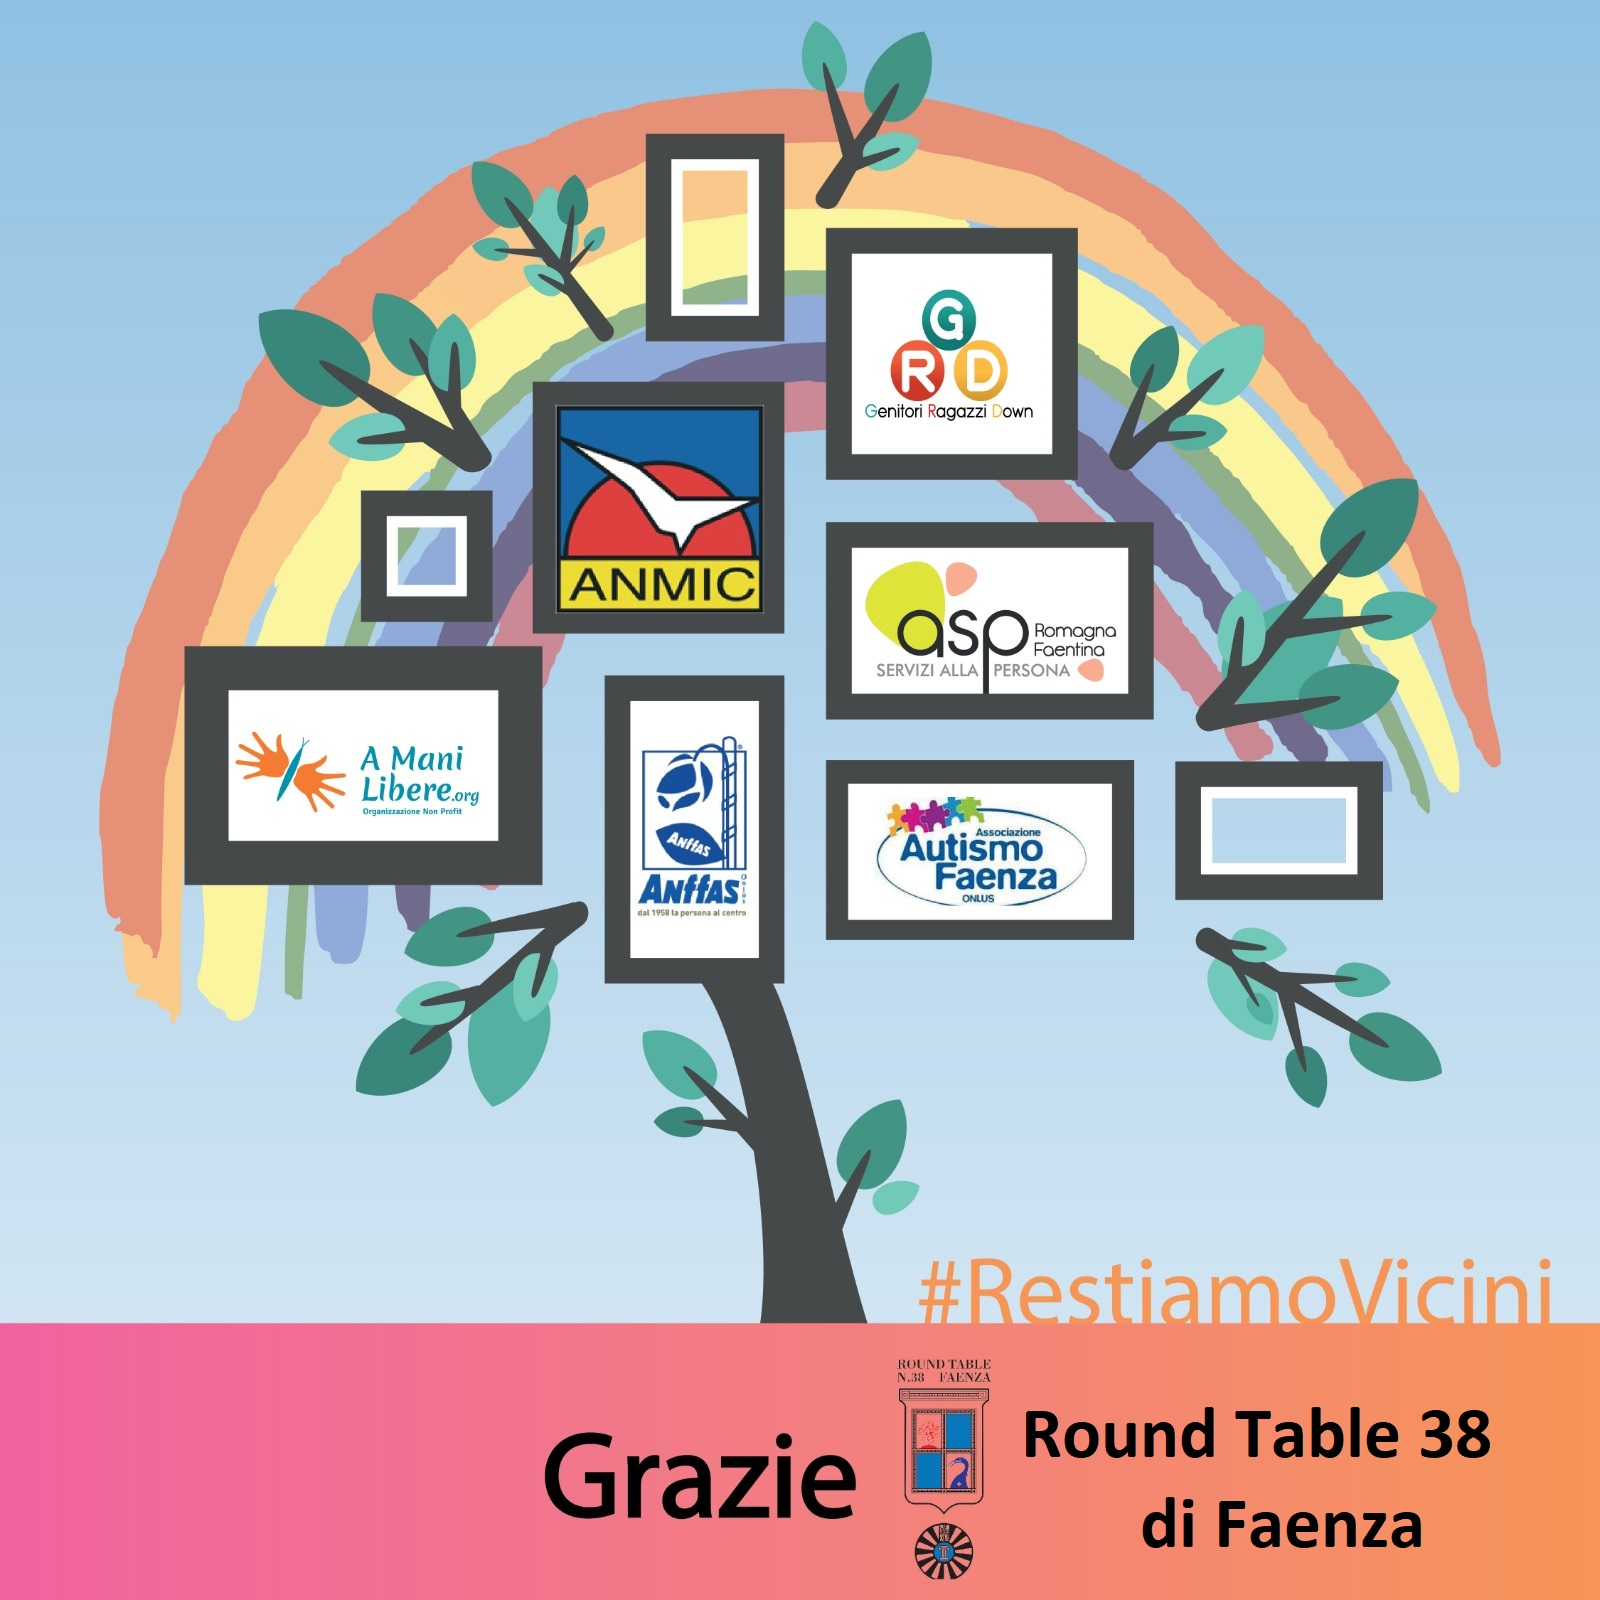 Grazie Round Table